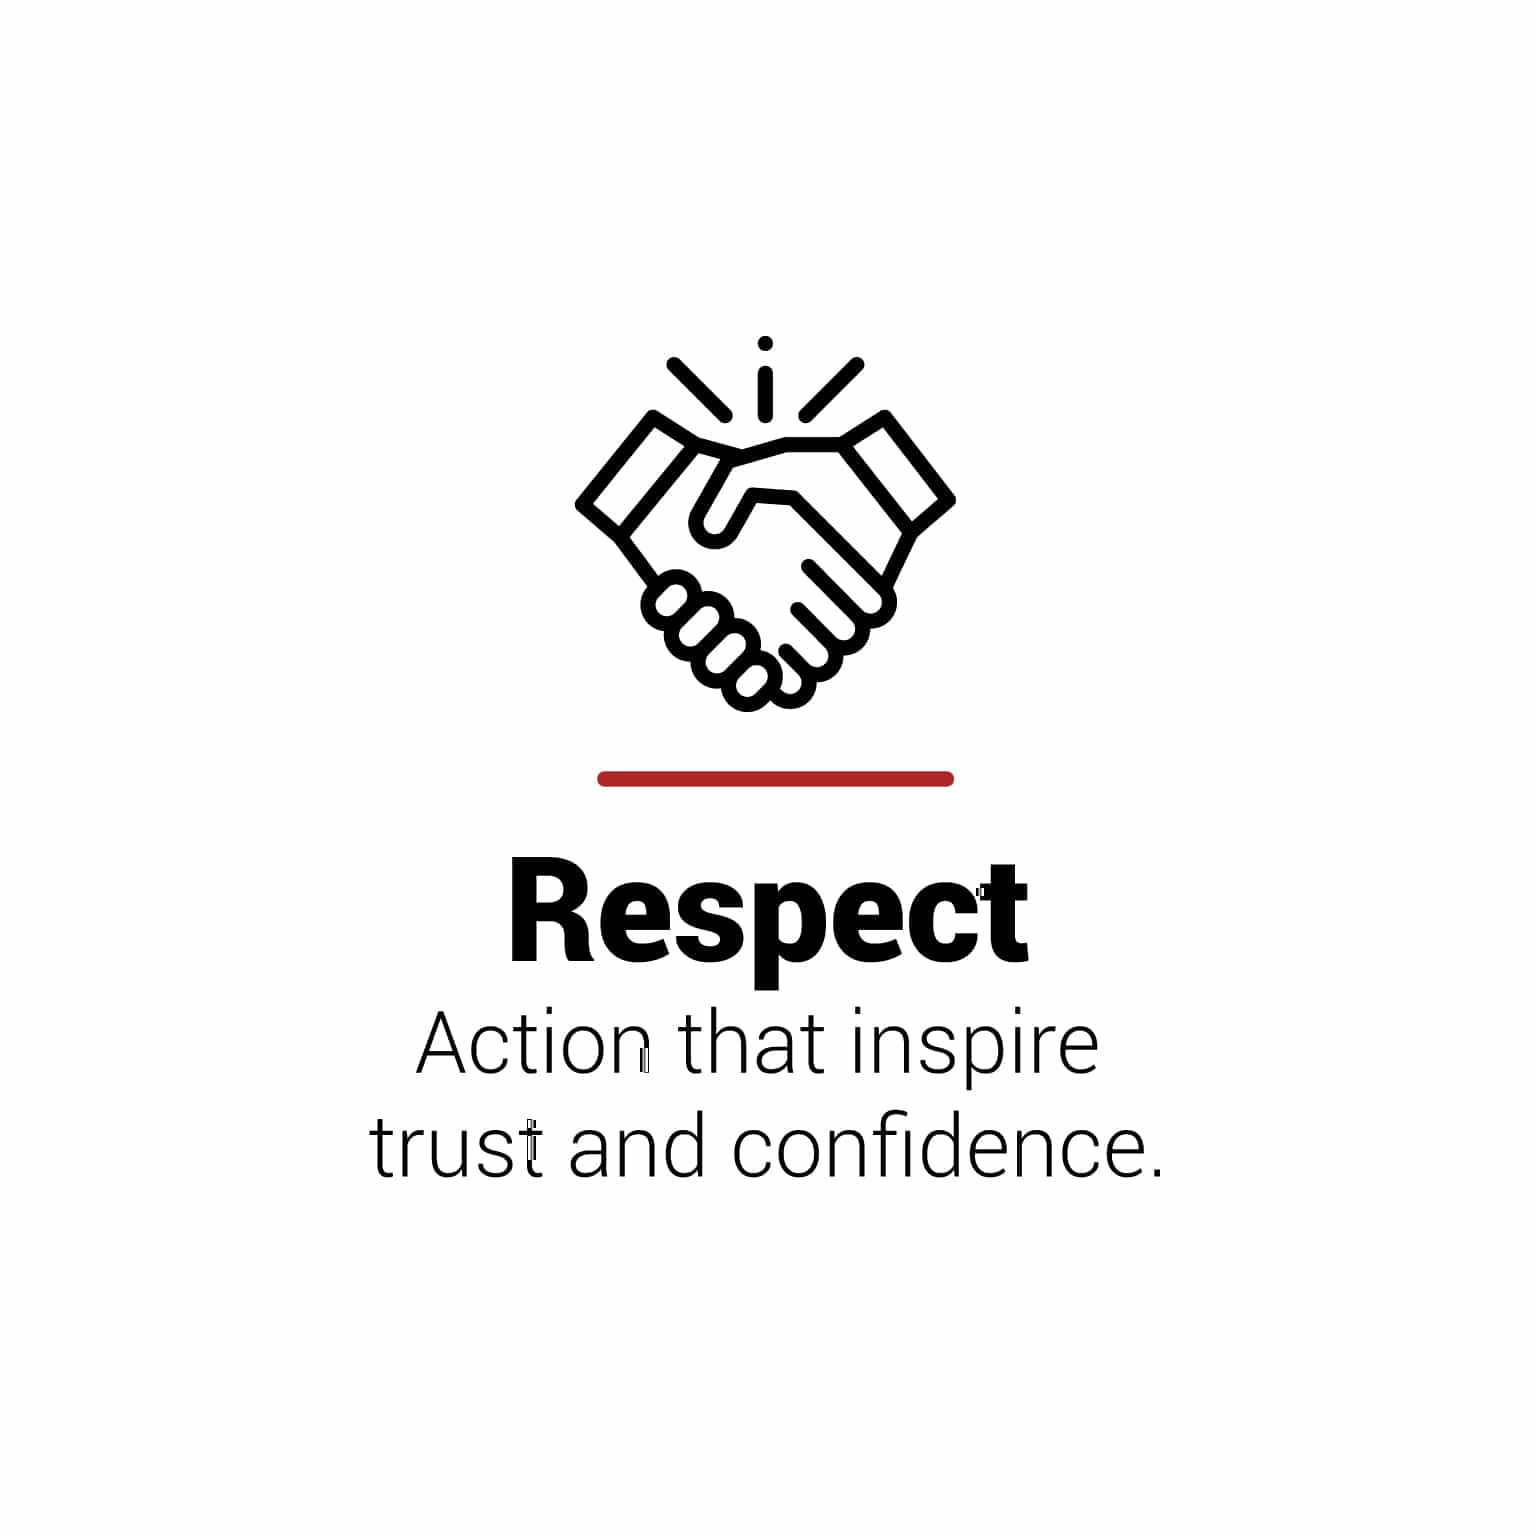 Respect Action that inspire and confidence at FH Packaging by www.fhpkg.com